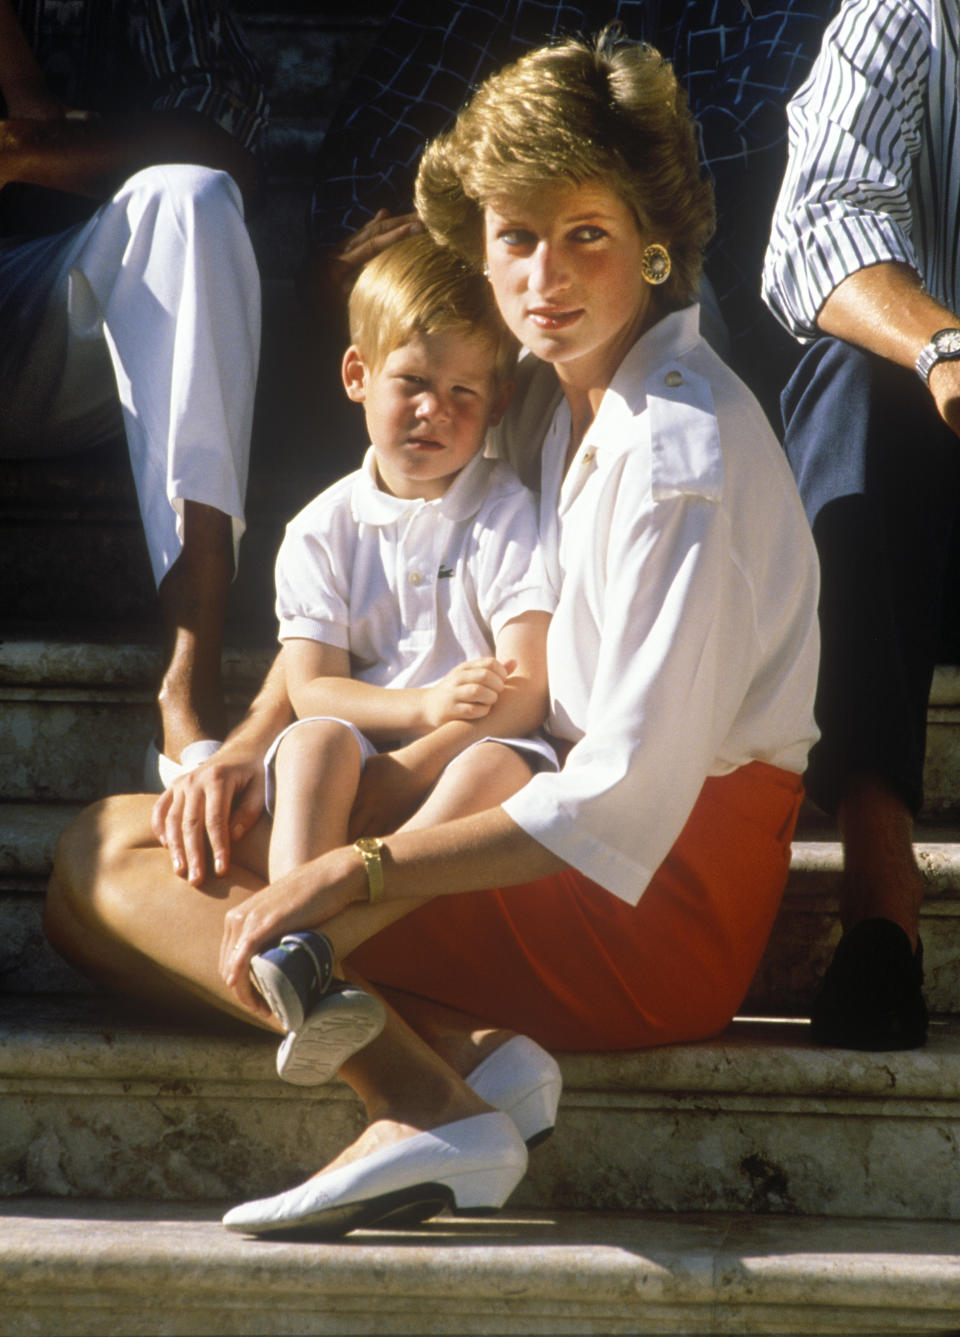 Charles, Prince of Wales, and Diana, Princess of Wales, on holiday in Majorca, Spain, with their sons Prince William and Prince Harry, They are guests of King Juan Carlos of Spain and his wife Queen Sofia, They are staying at their holiday home, the Marivent Palace, which is situated just outside the capital city of Palma, 13th August 1988. (Photo by John Shelley Collection/Avalon/Getty Images)